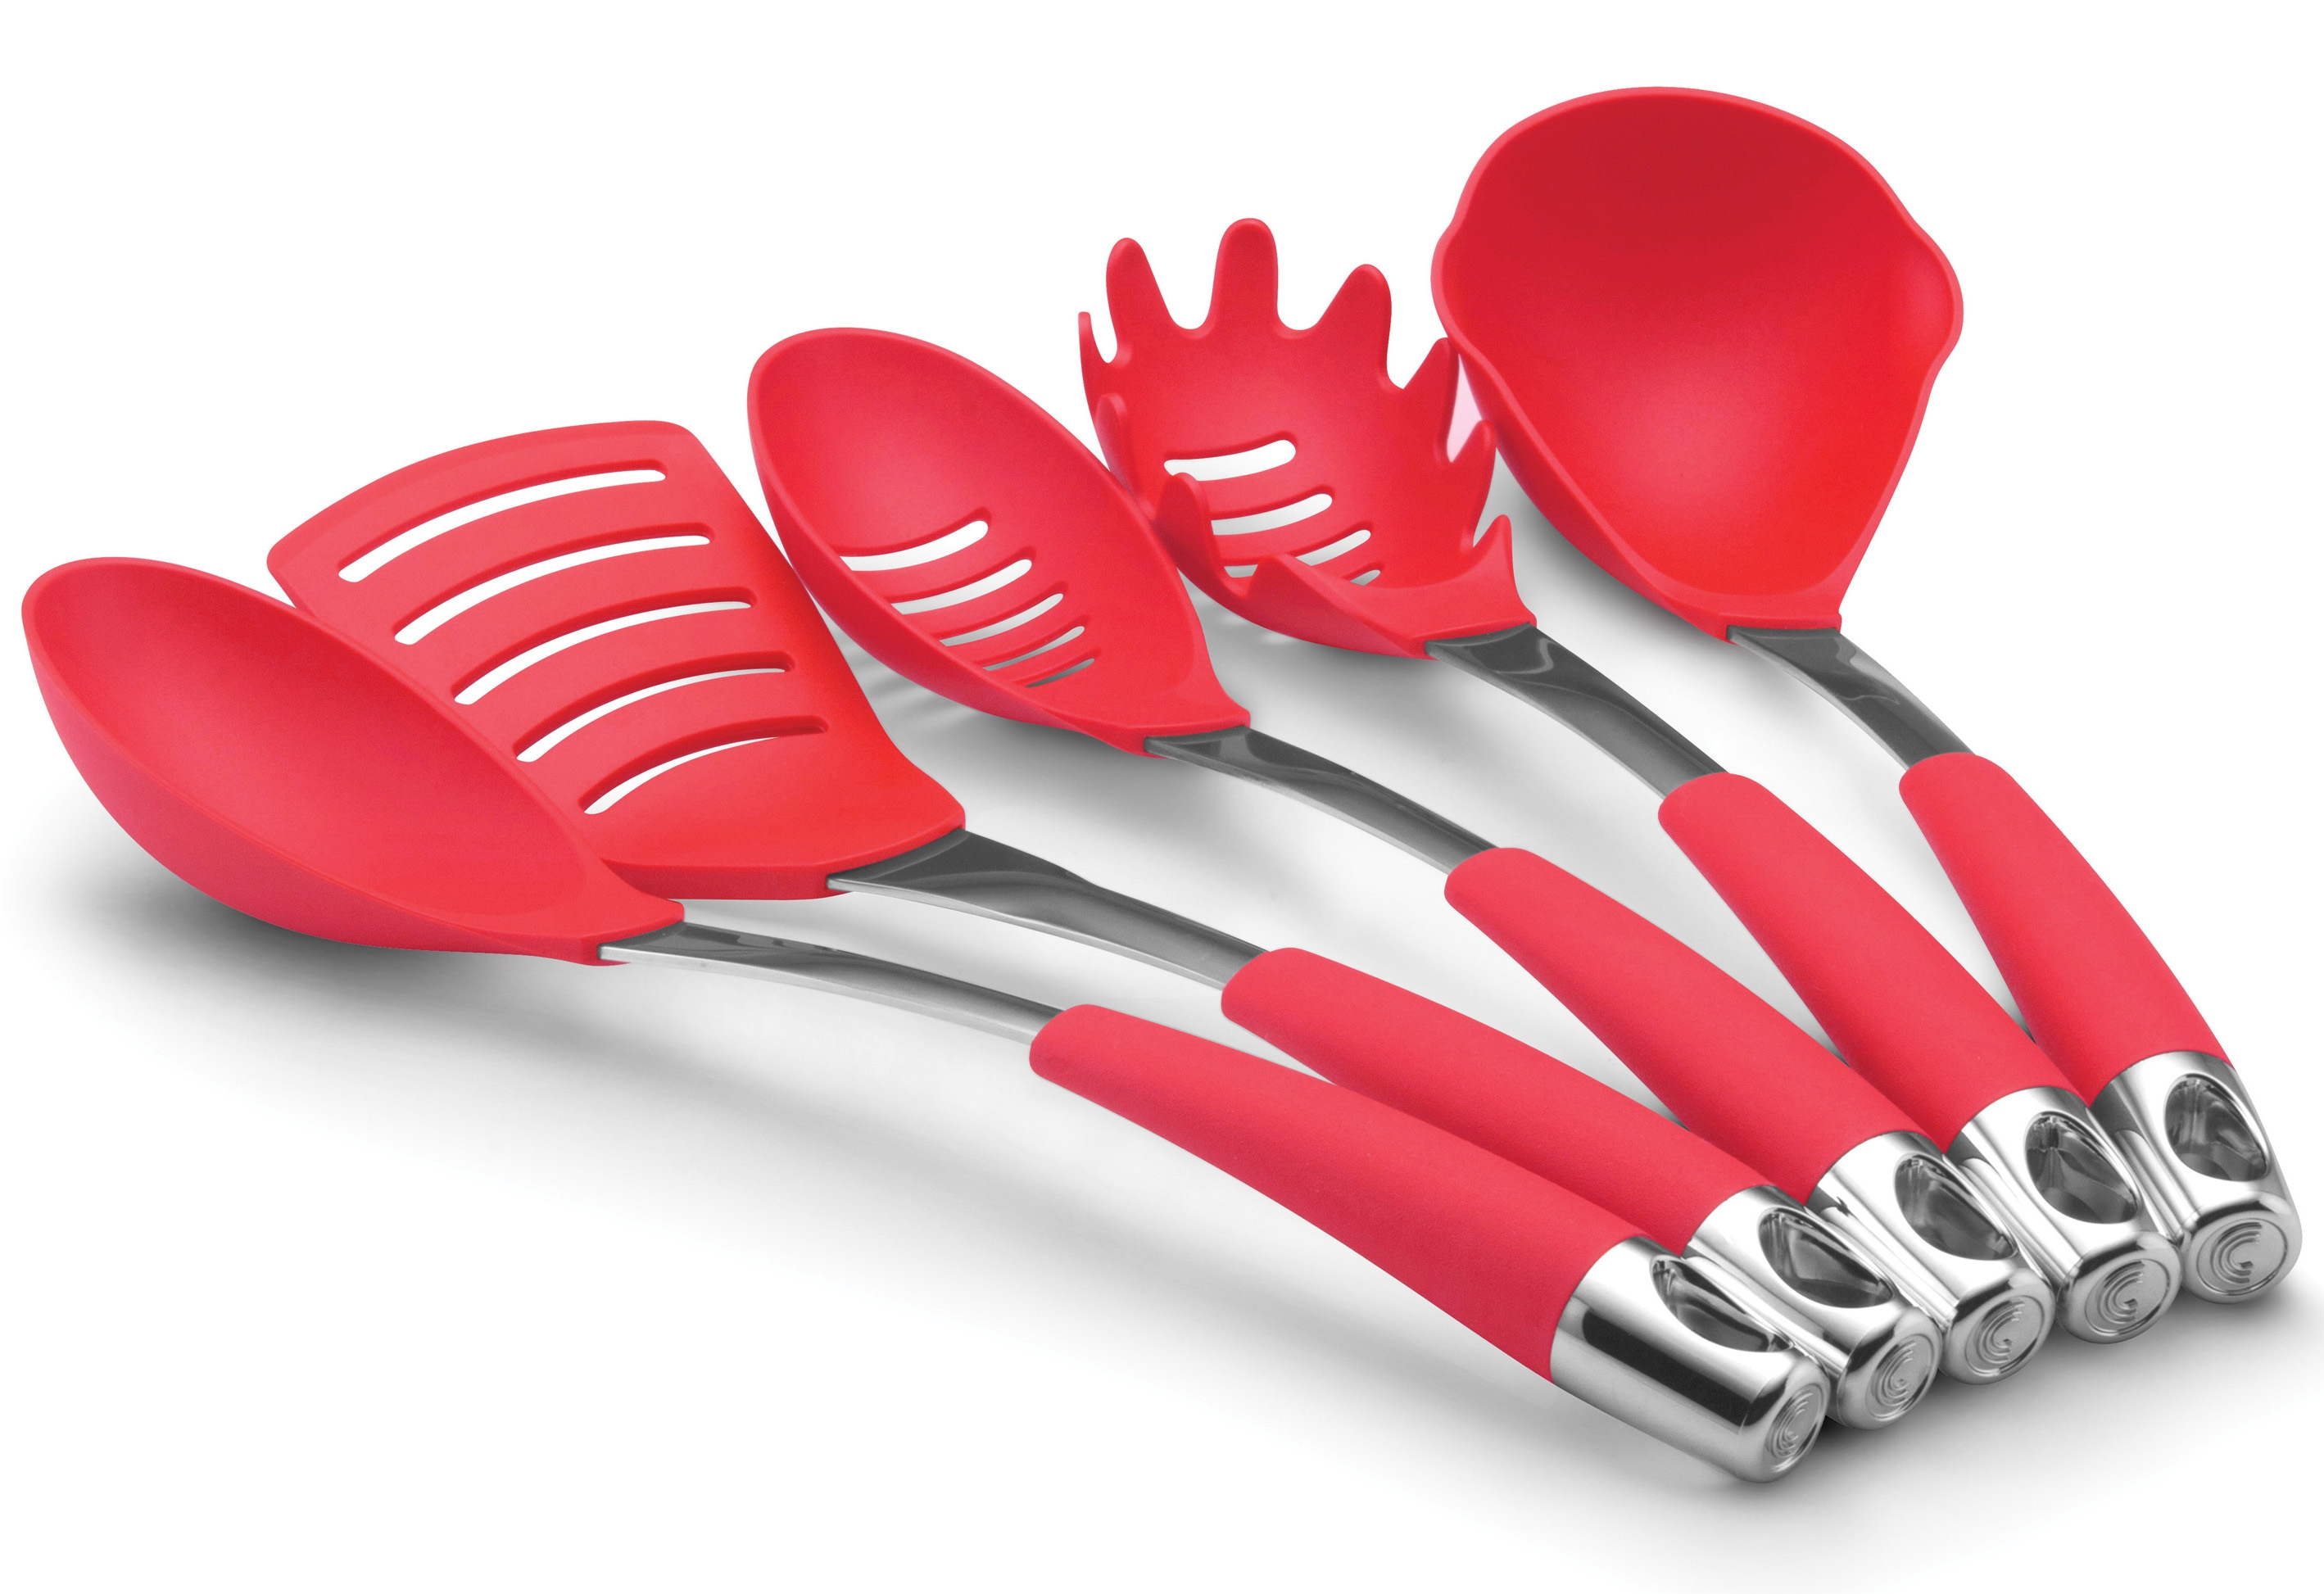 Red Kitchen Utensil Set